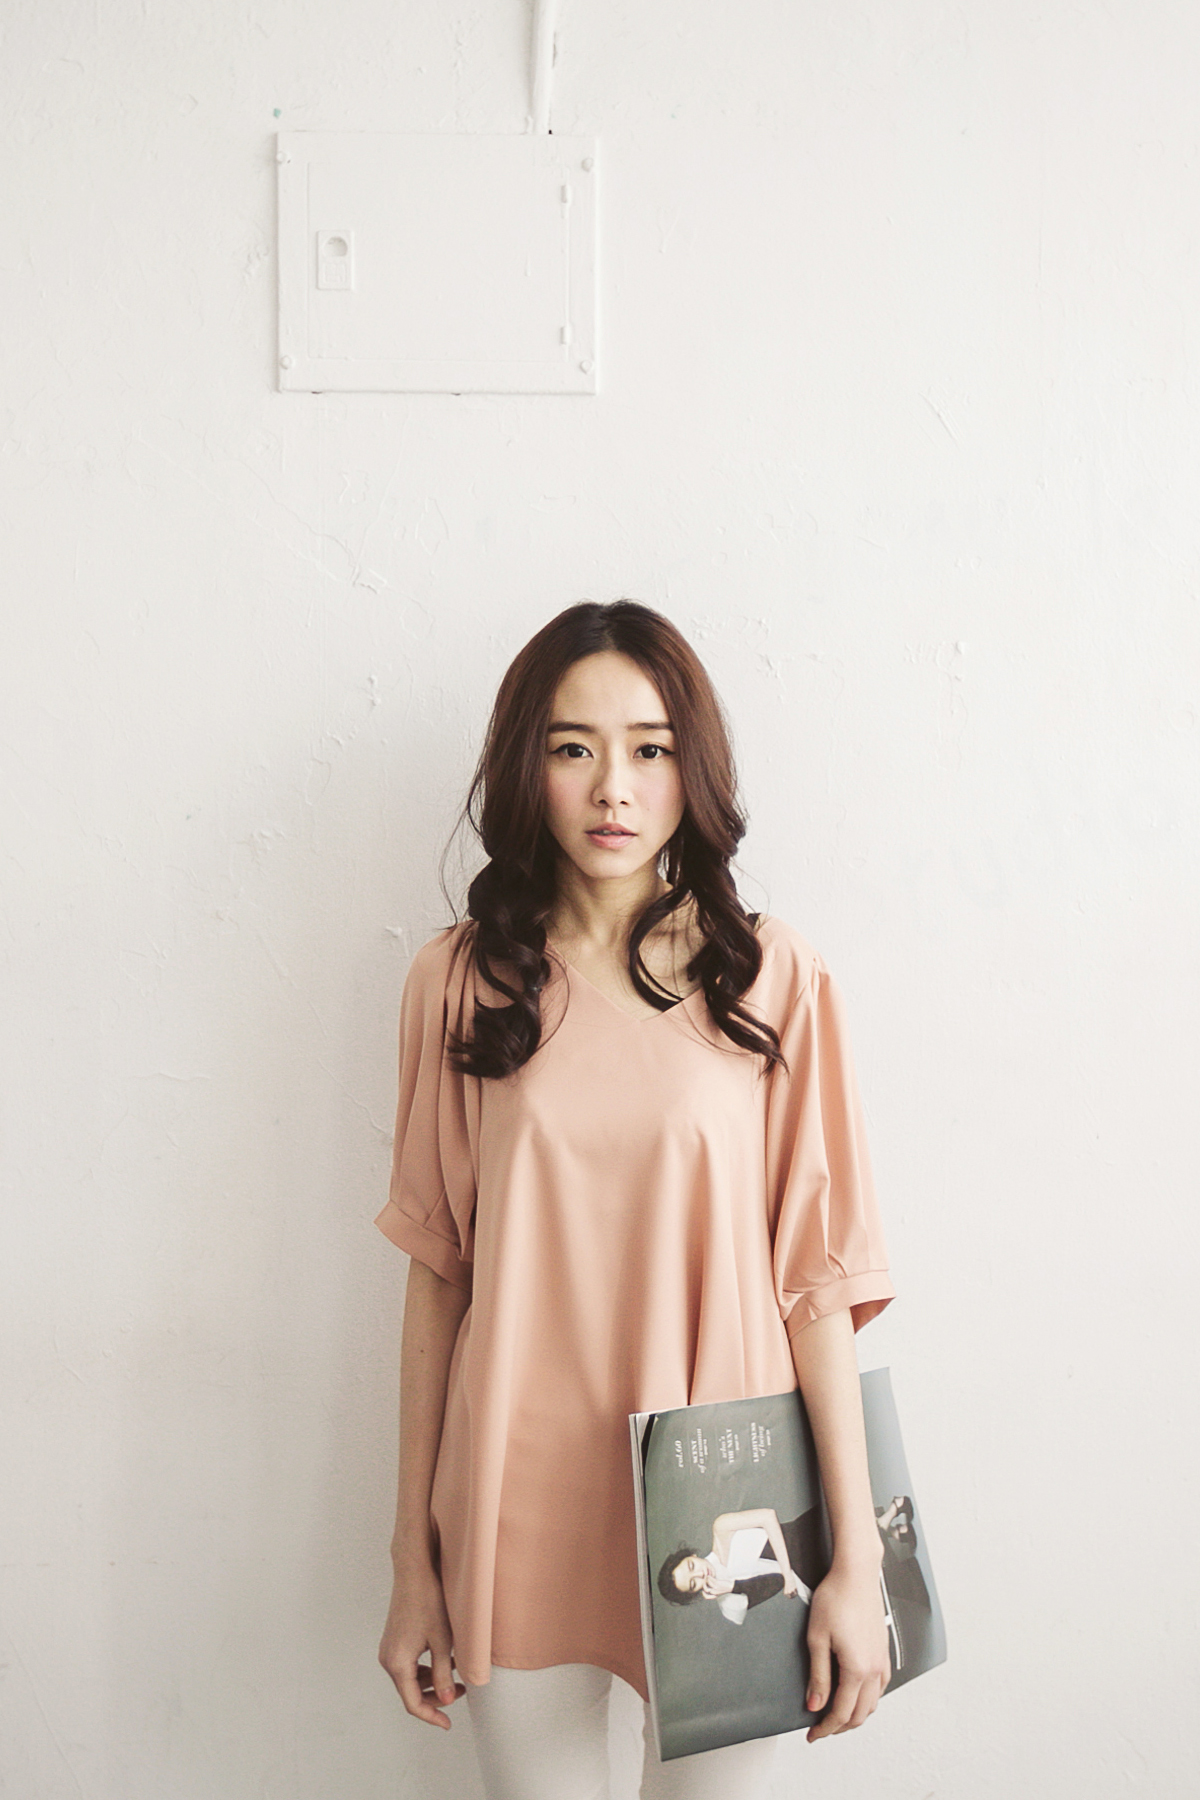 TOKYO FASHION Womens Chiffon Top With Crossover Open Back Japanese Fashion